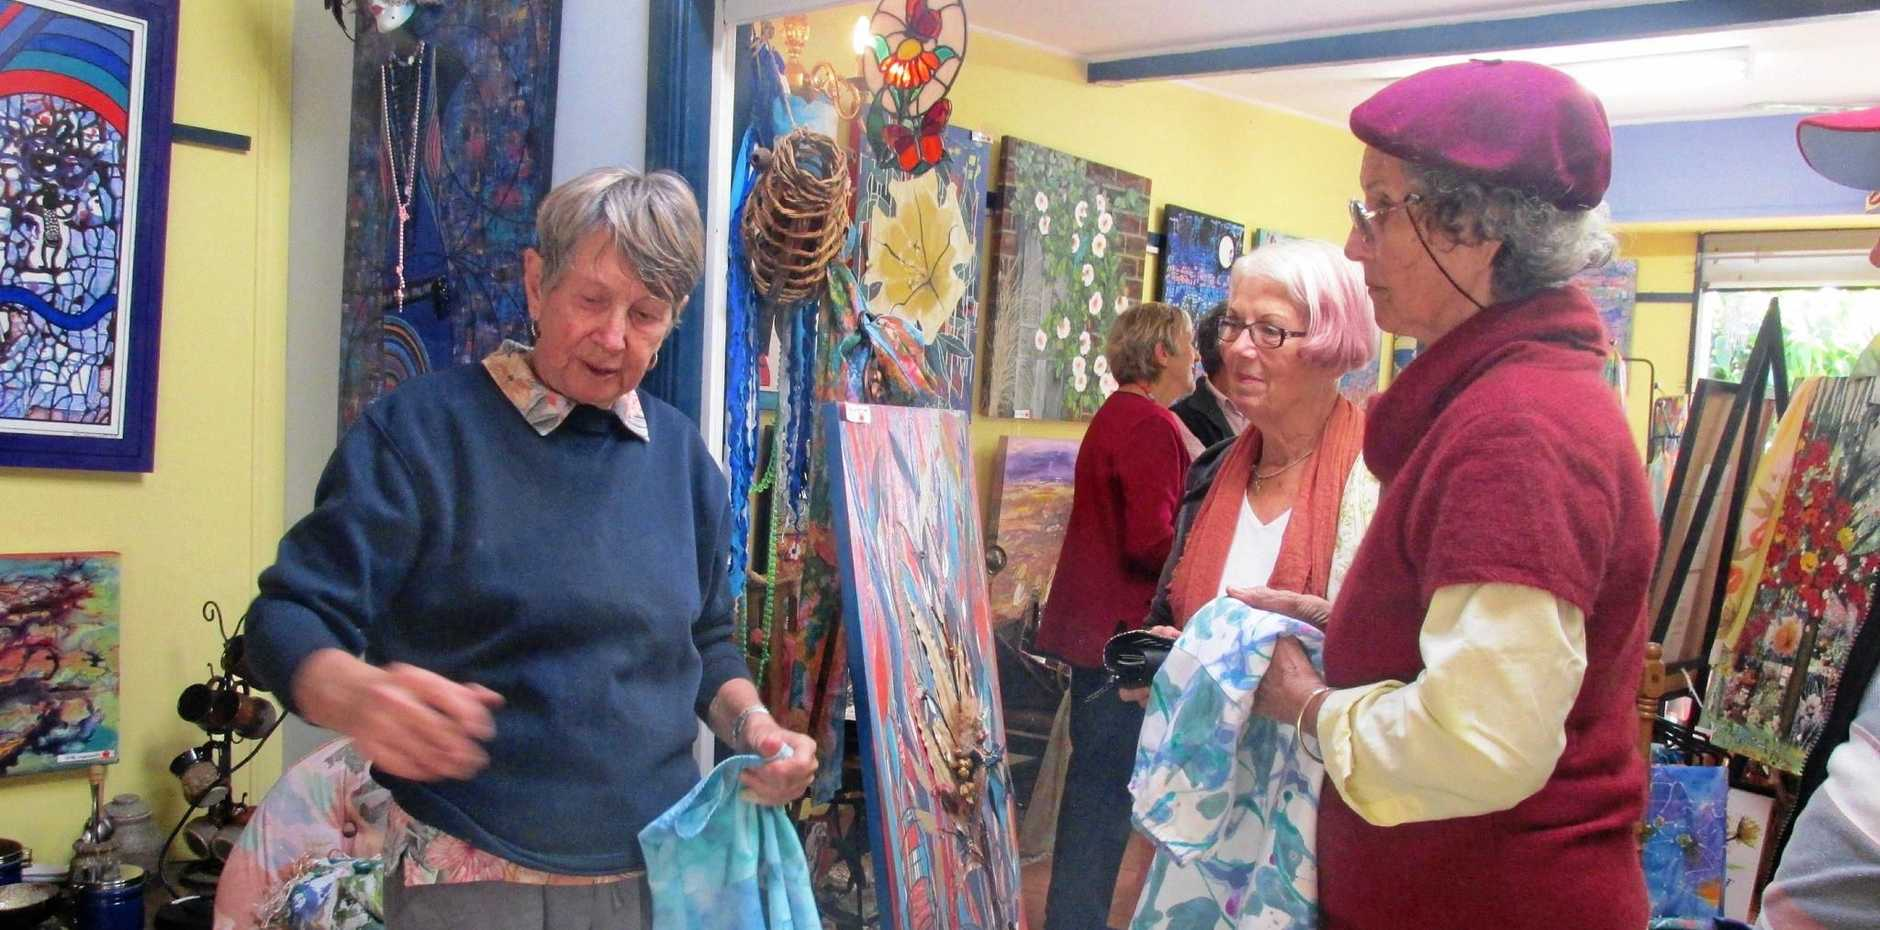 STUDIO TRAIL: The Tin Can Bay art gallery featuring the Cooloola Coast Art Group was one of the studios which welcomed visitors on the Gympie Region Studio Trails in 2016. Local artists are invited to be a part of the Gympie Region Studio Trails in 2017.